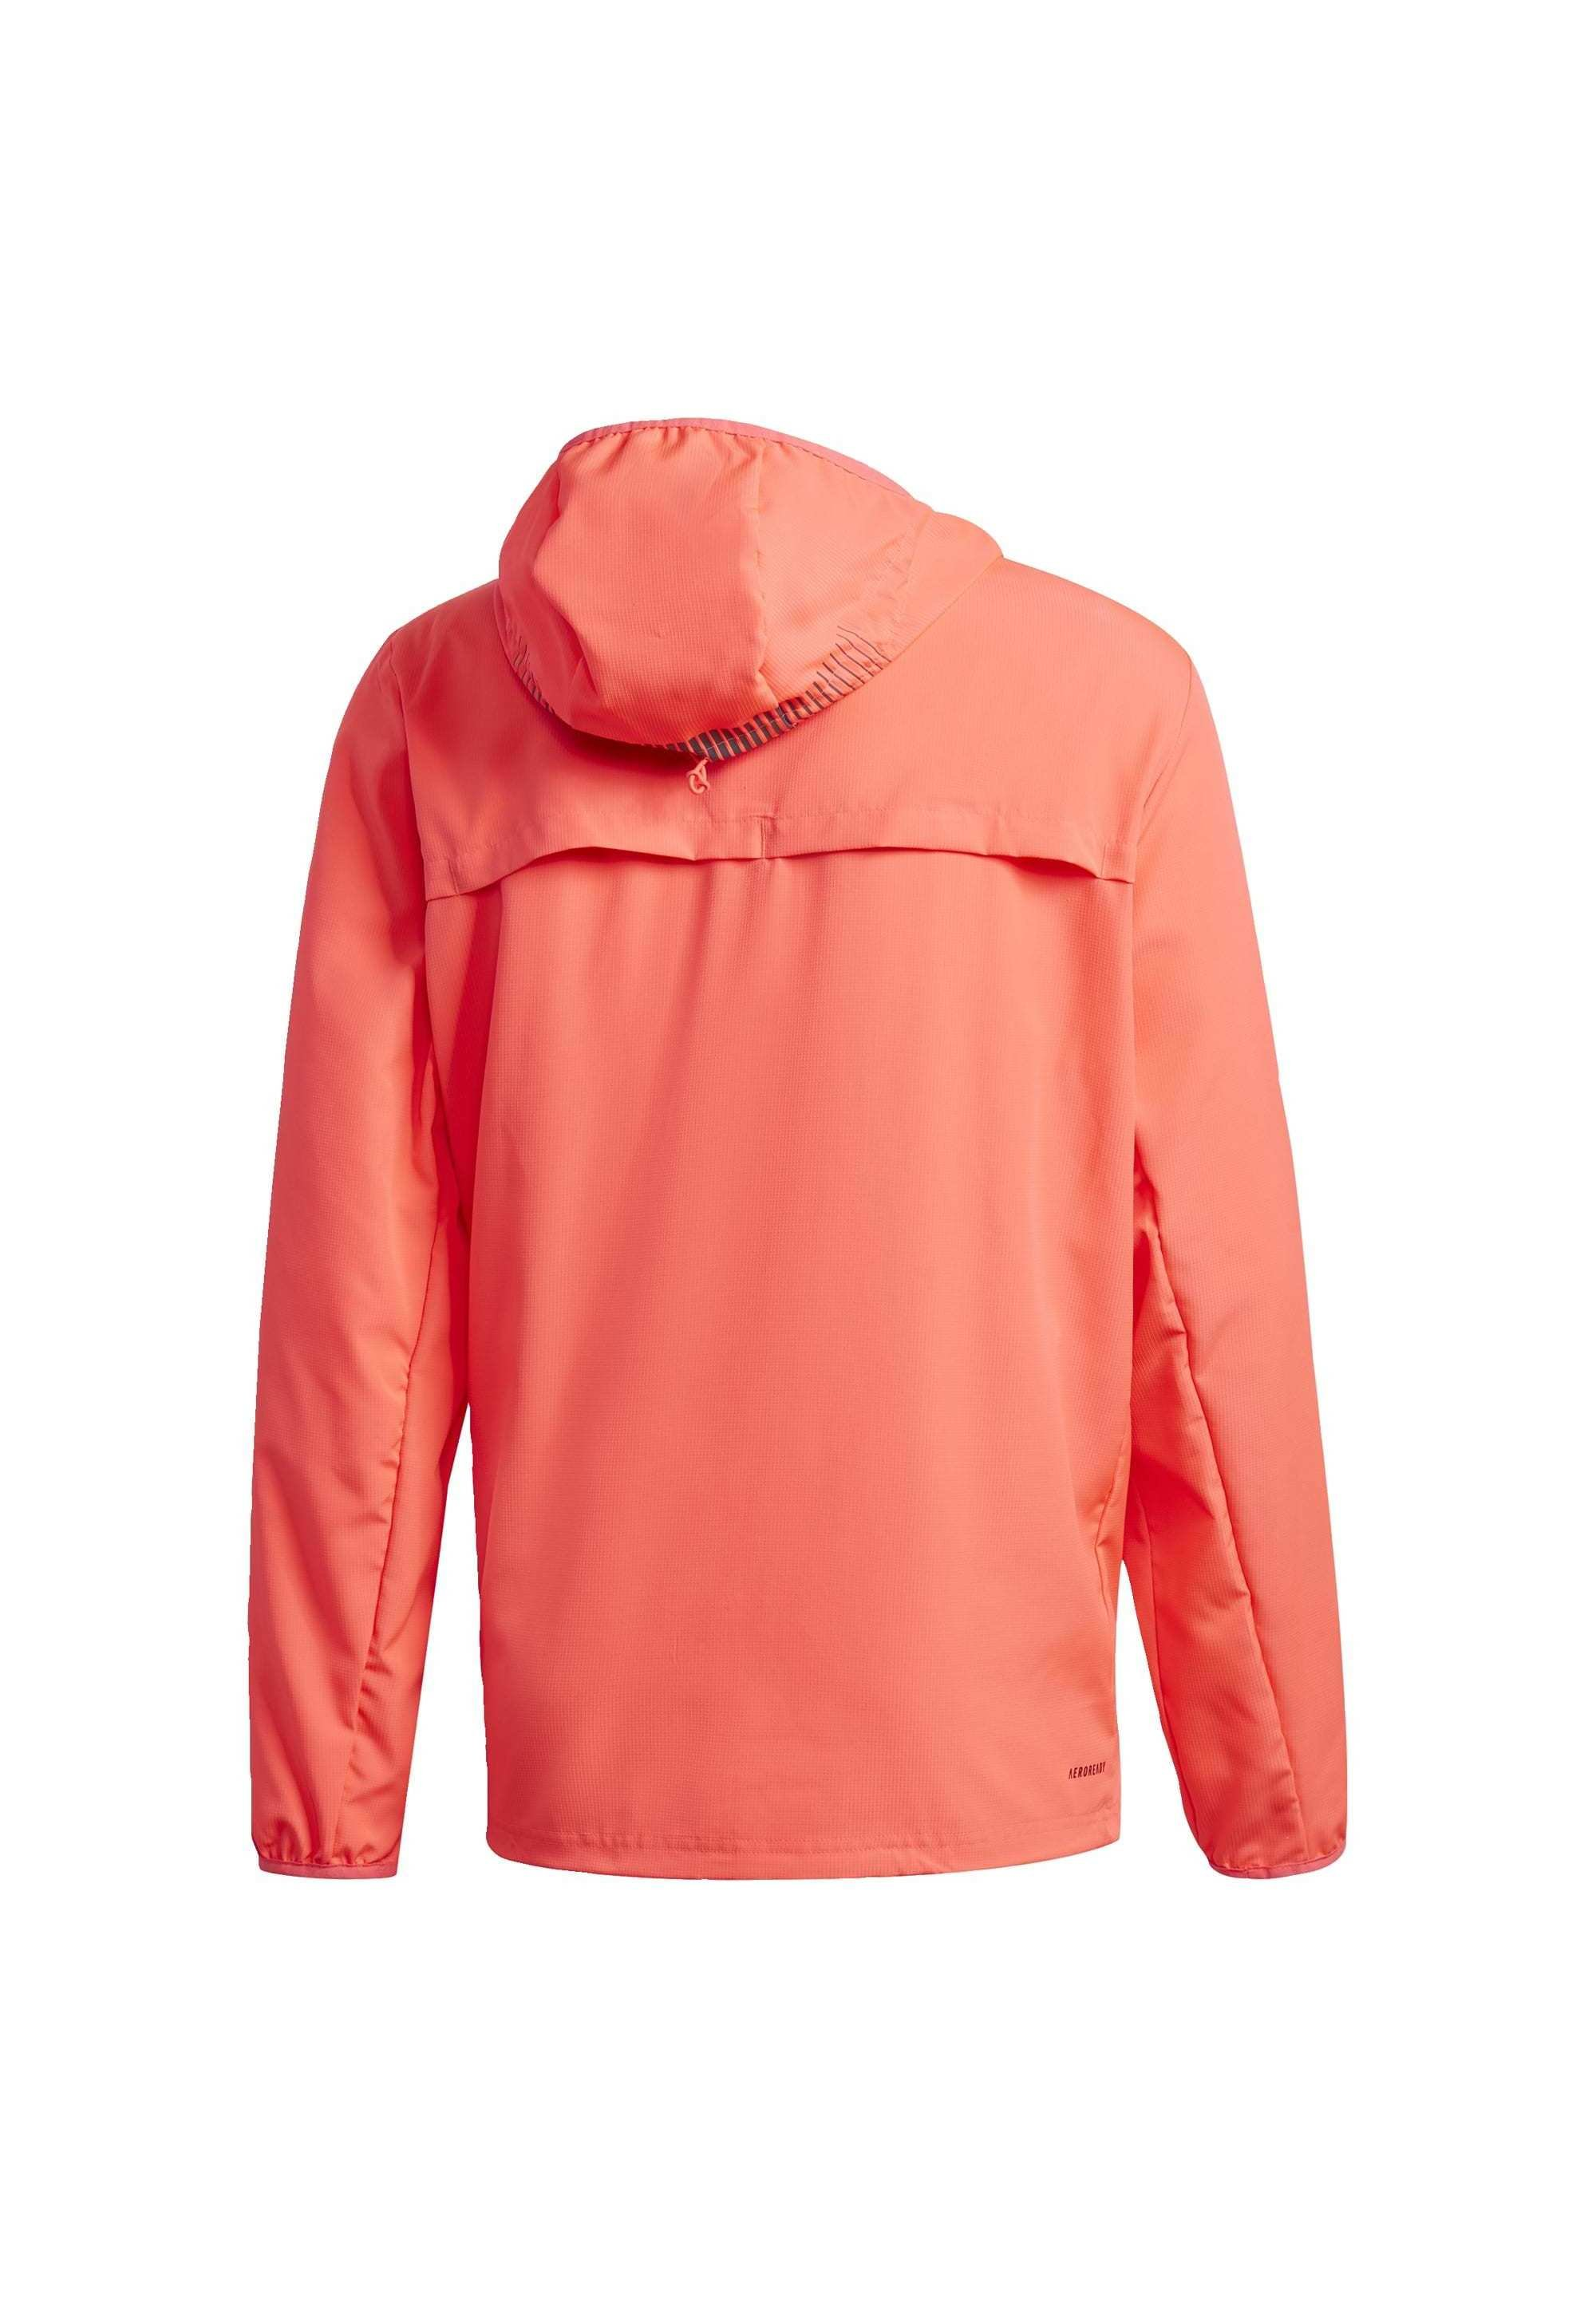 ACTIVATED TECH PRIMEBLUE WINDBREAKER Windbreaker pink